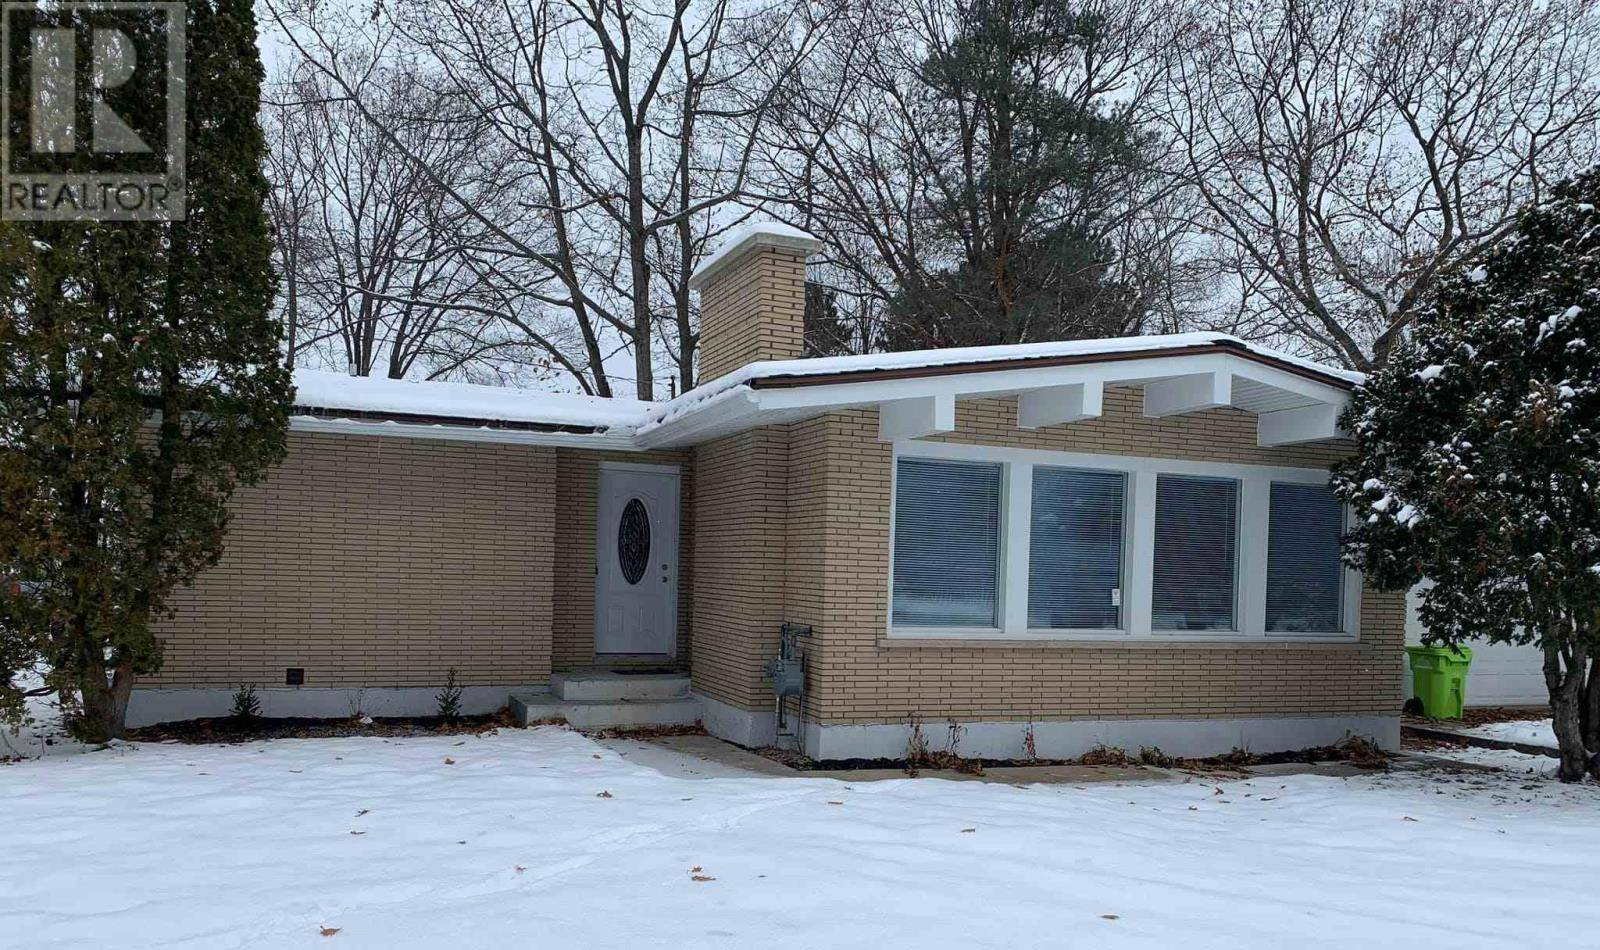 House for sale at 4 Ford St Sault Ste. Marie Ontario - MLS: SM127448